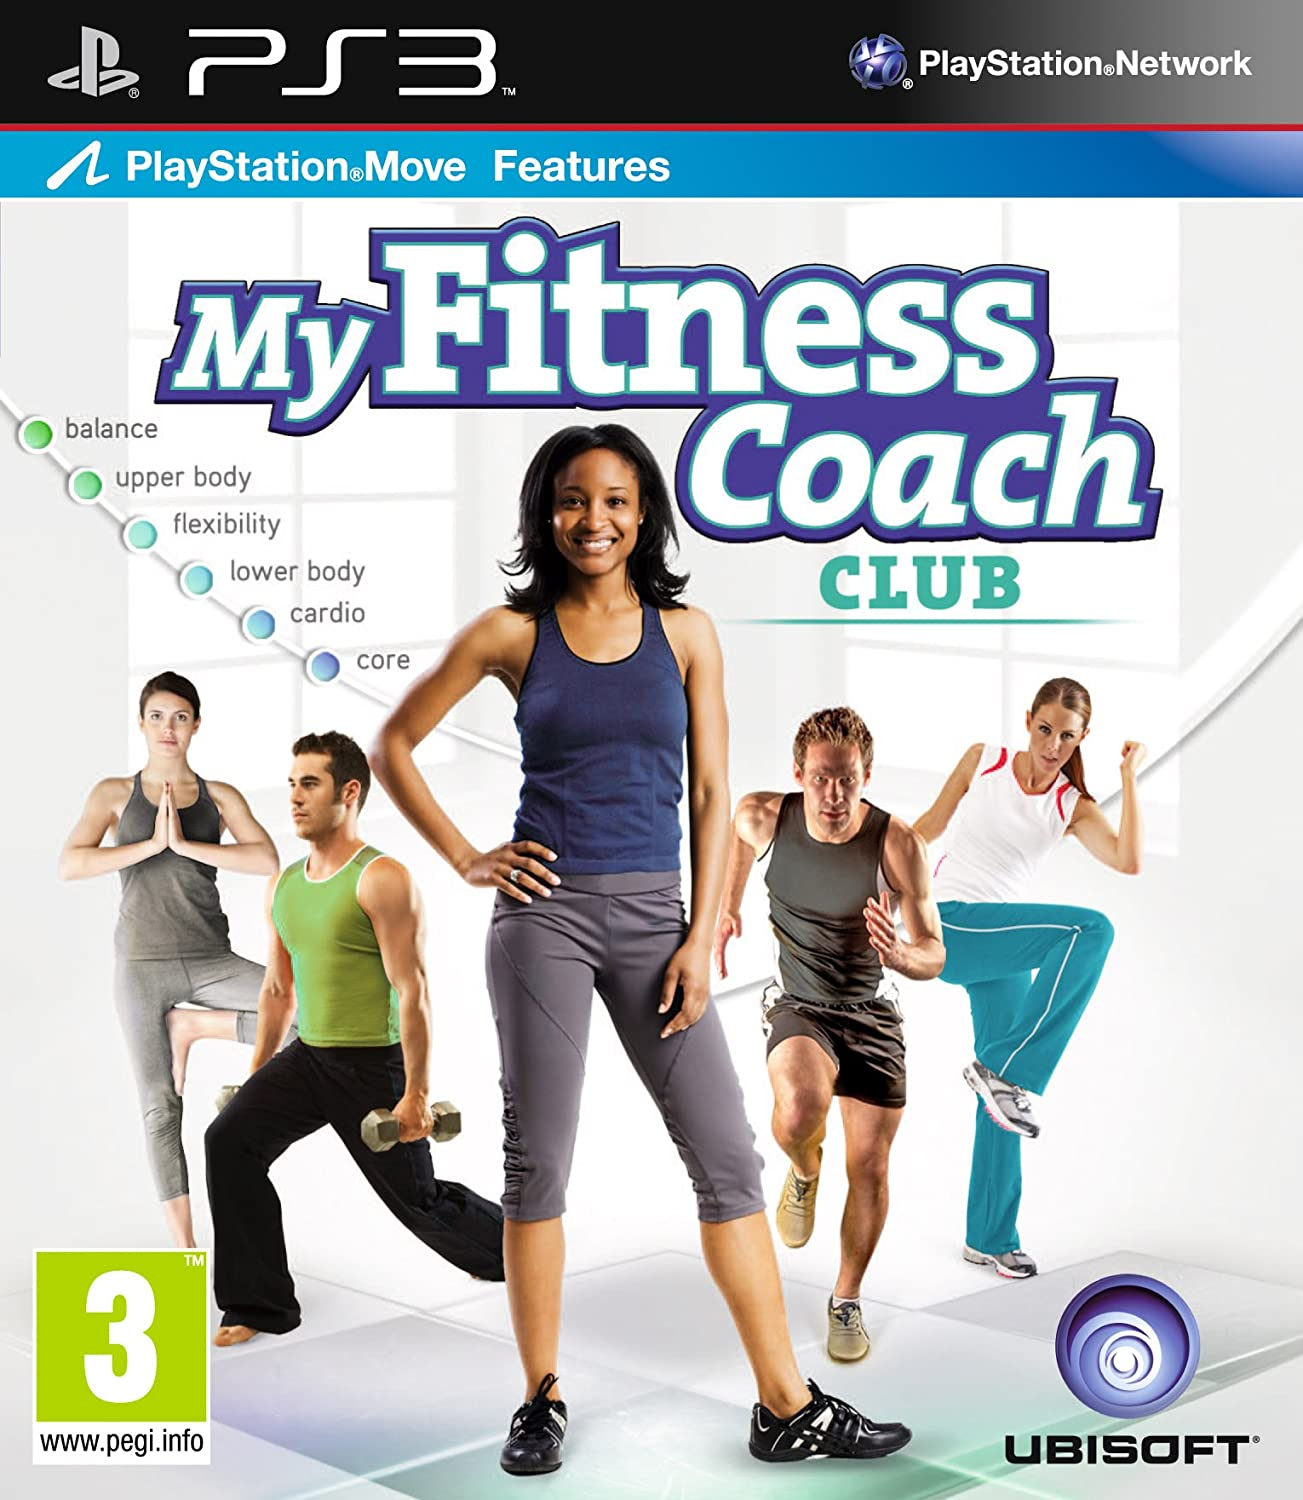 Games ps3 my fitness coach club as new bid to win for sale in